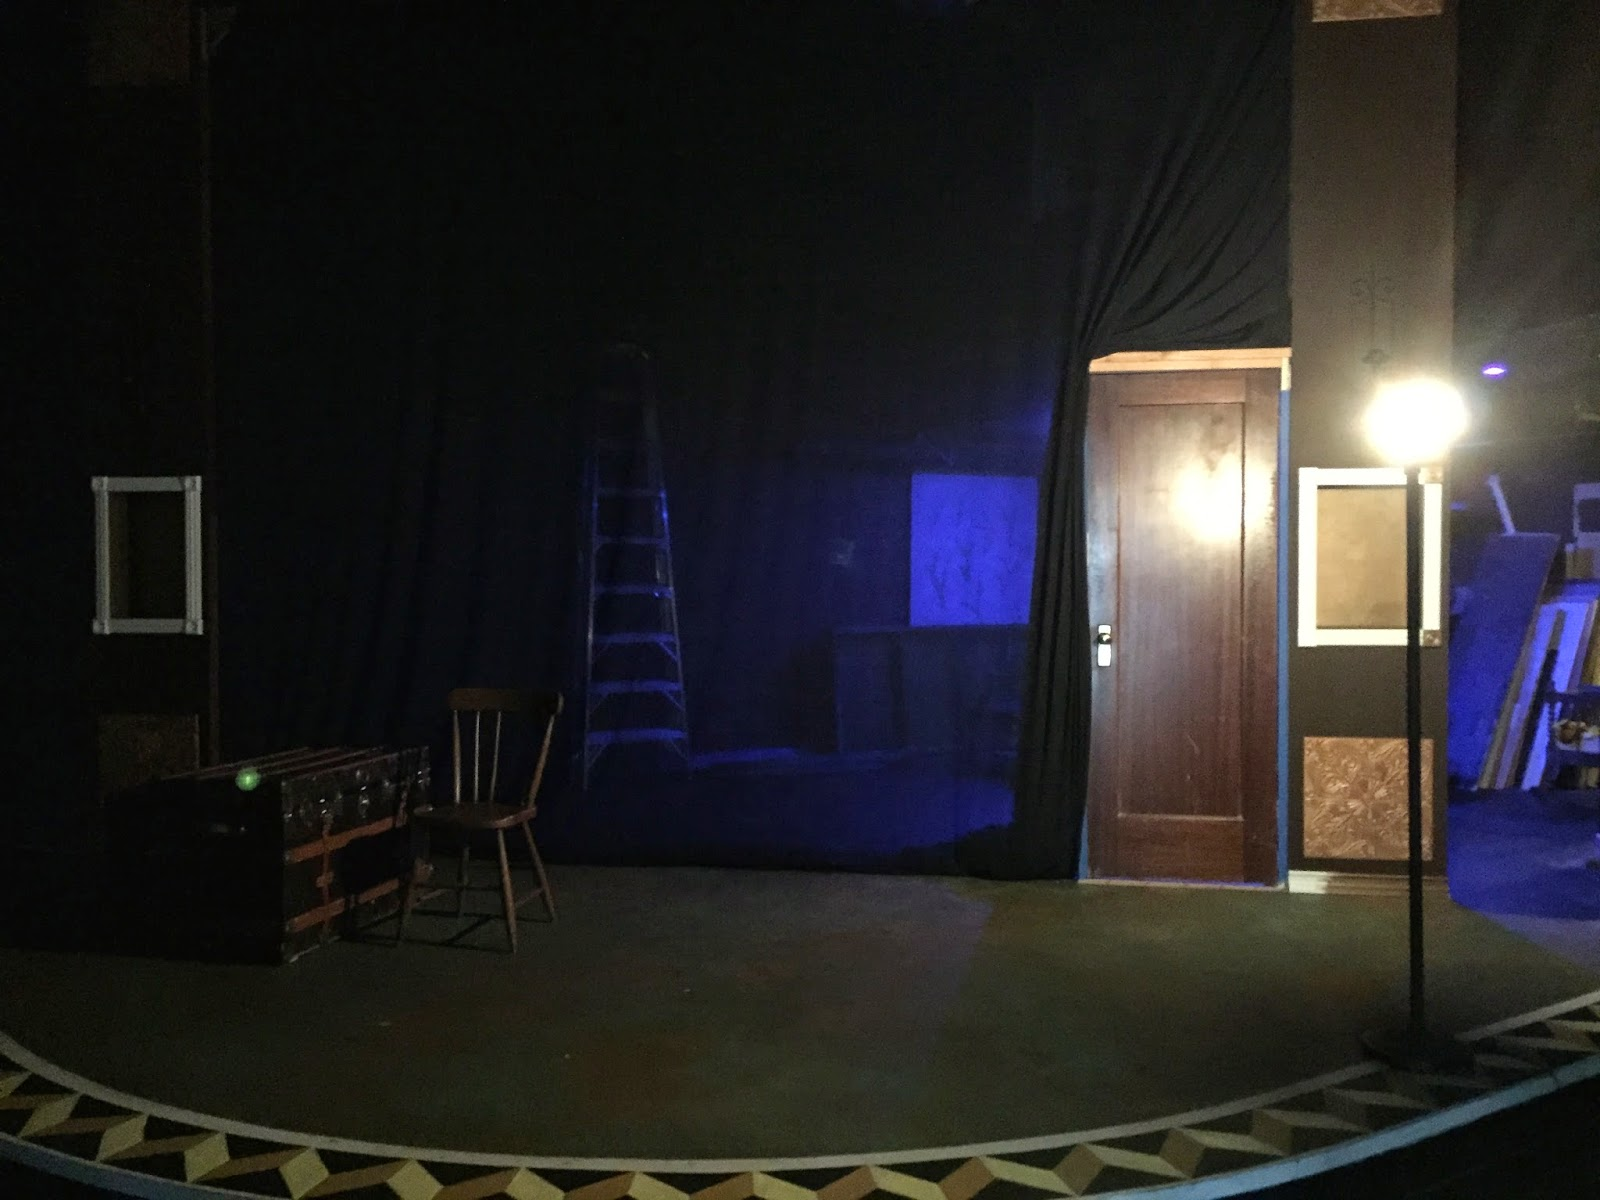 The Dragon Theatre Ghost Light In Action